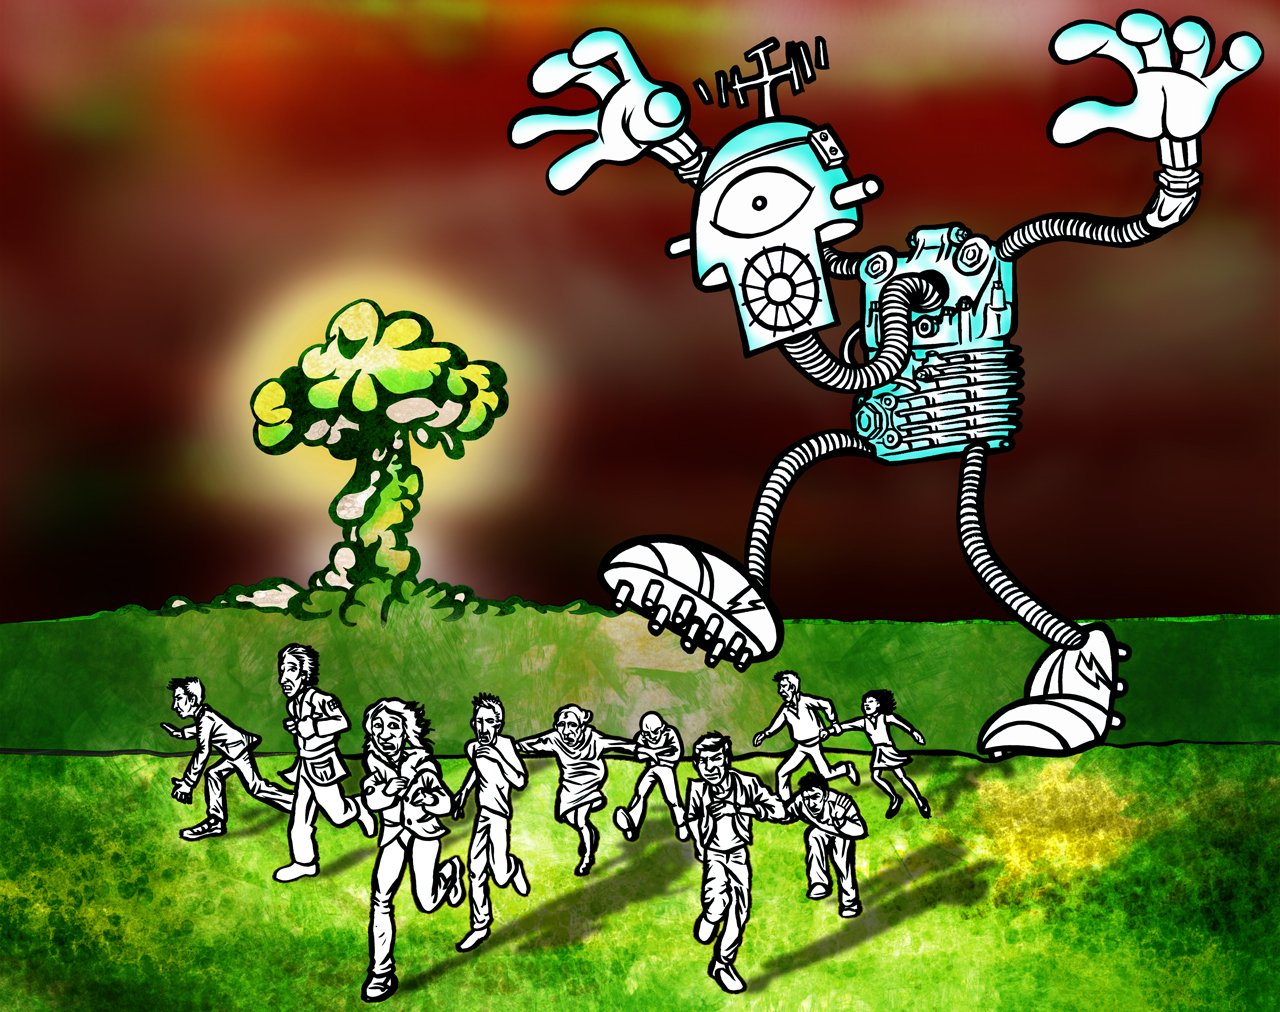 Giant robot chasing a crowd of fleeing people.